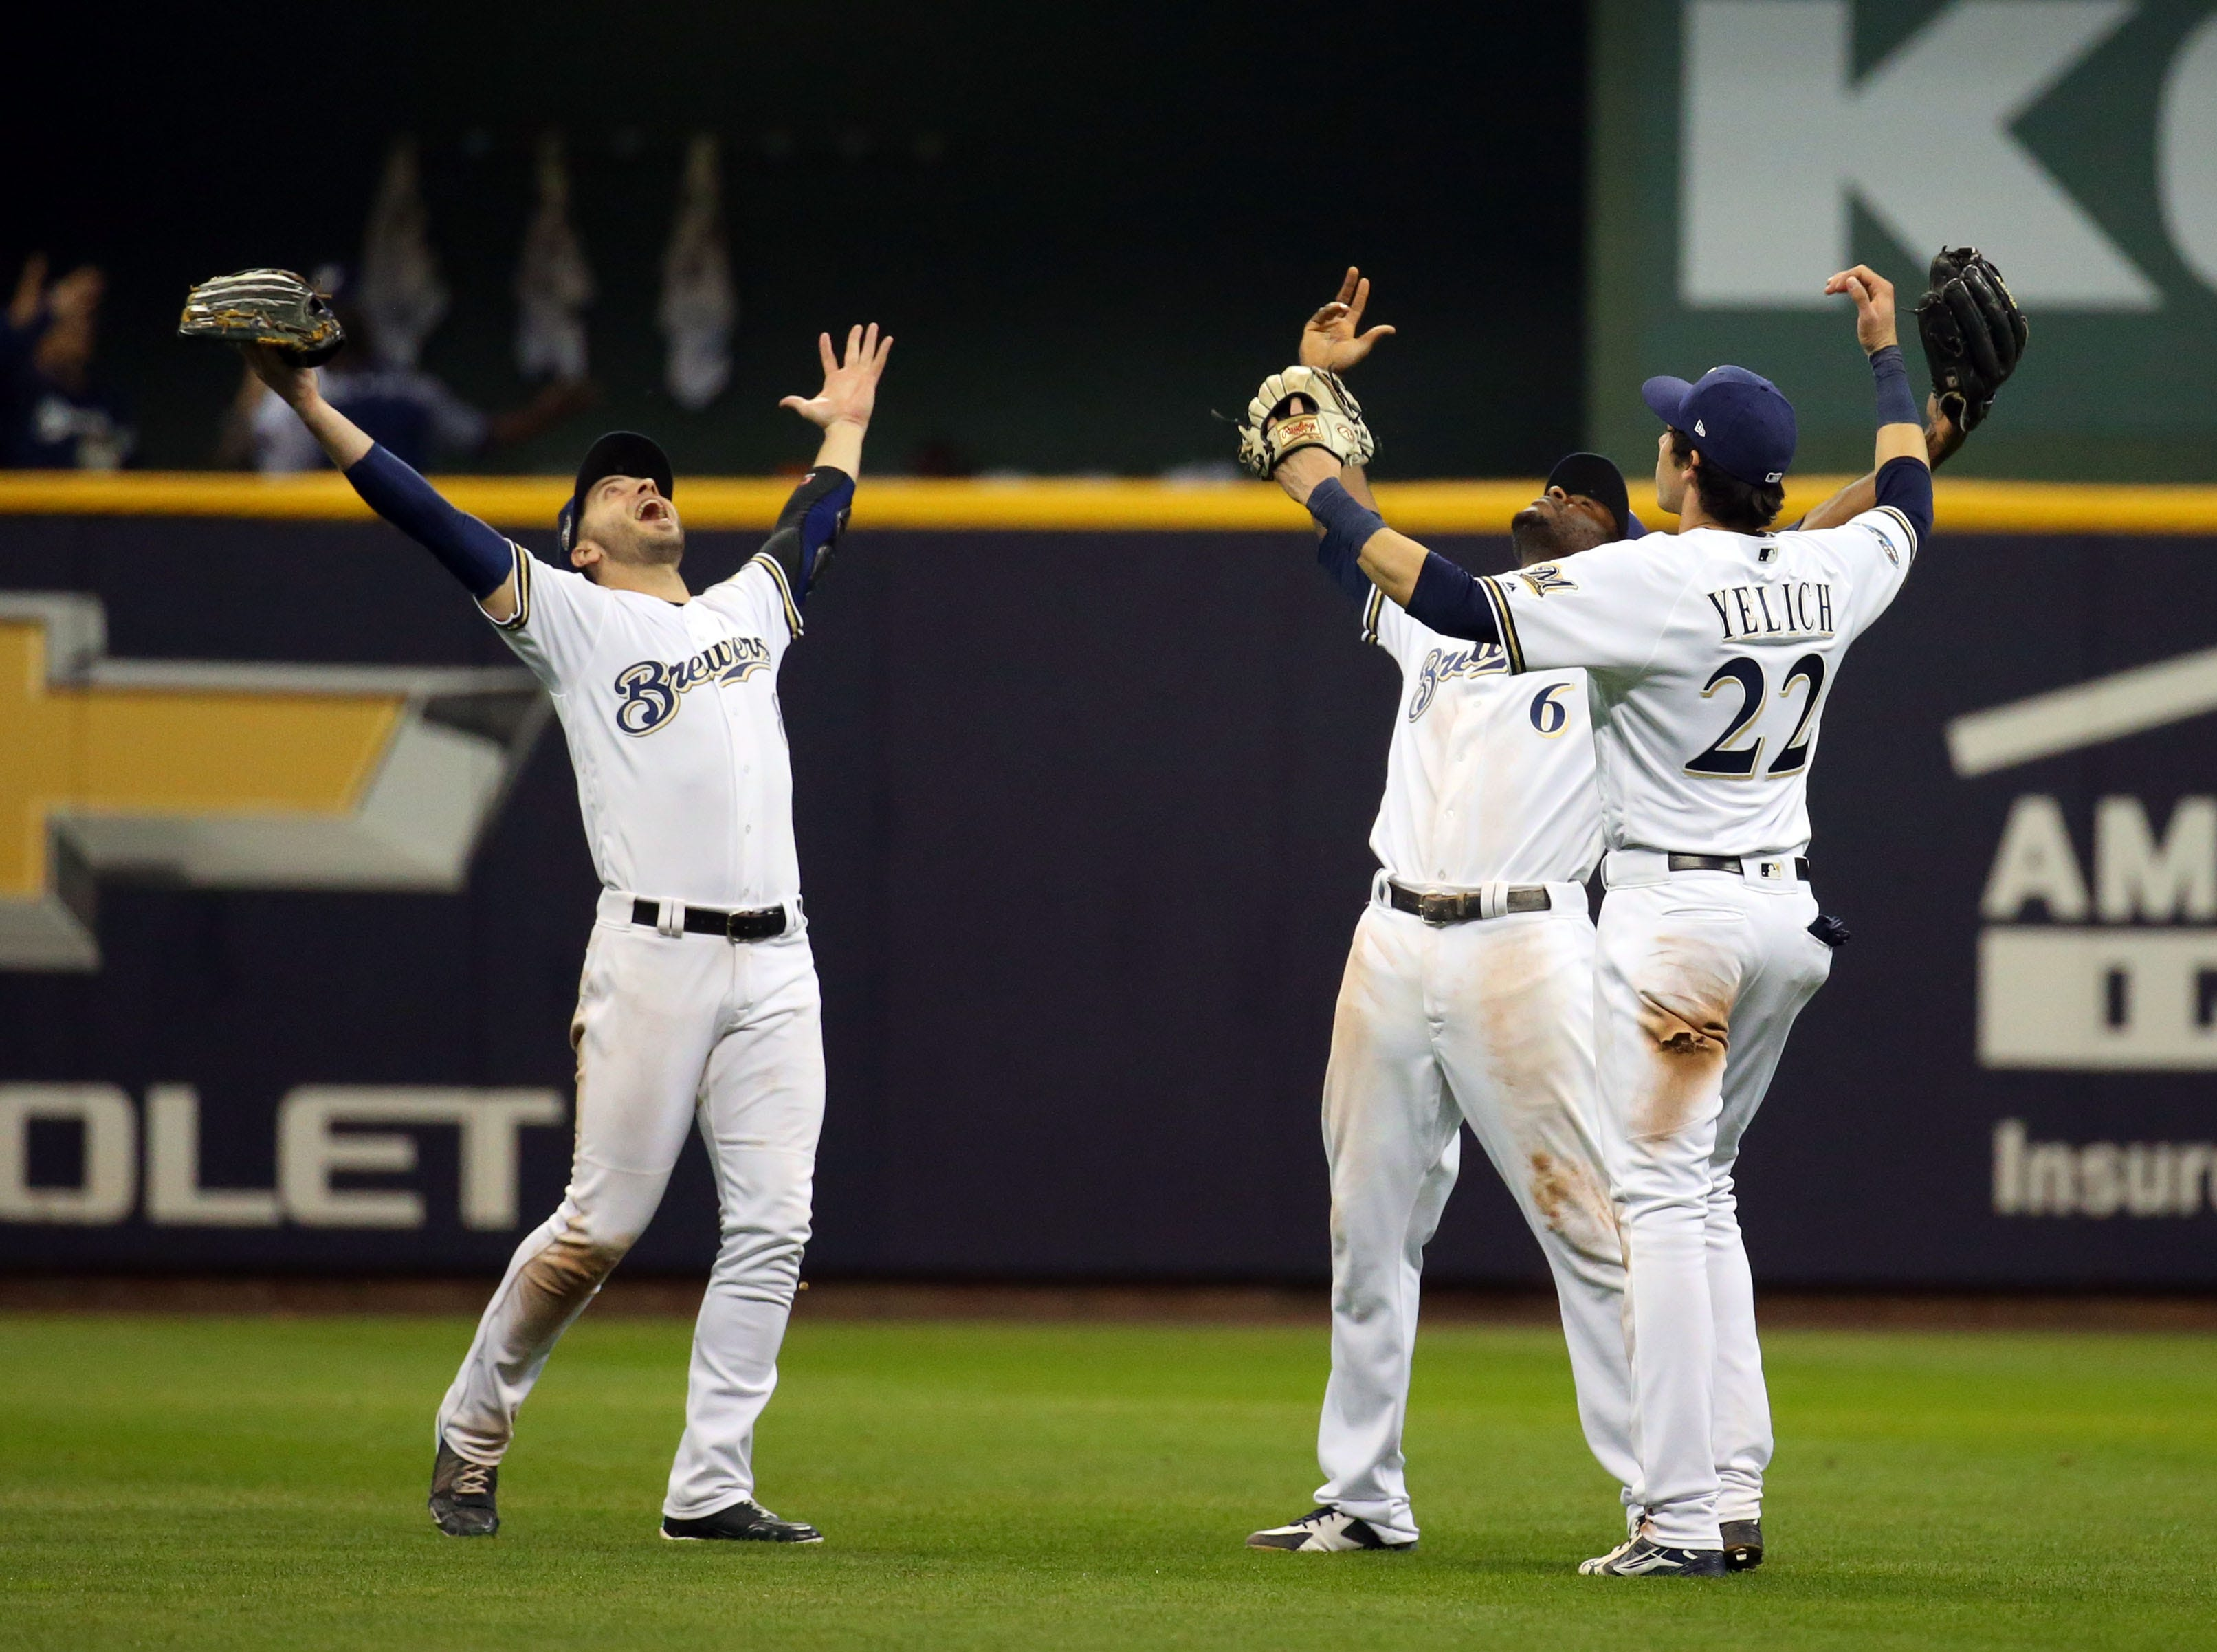 NLCS Game 6: Brewers outfielder Ryan Braun, Lorenzo Cain and Christian Yelich celebrate the win.